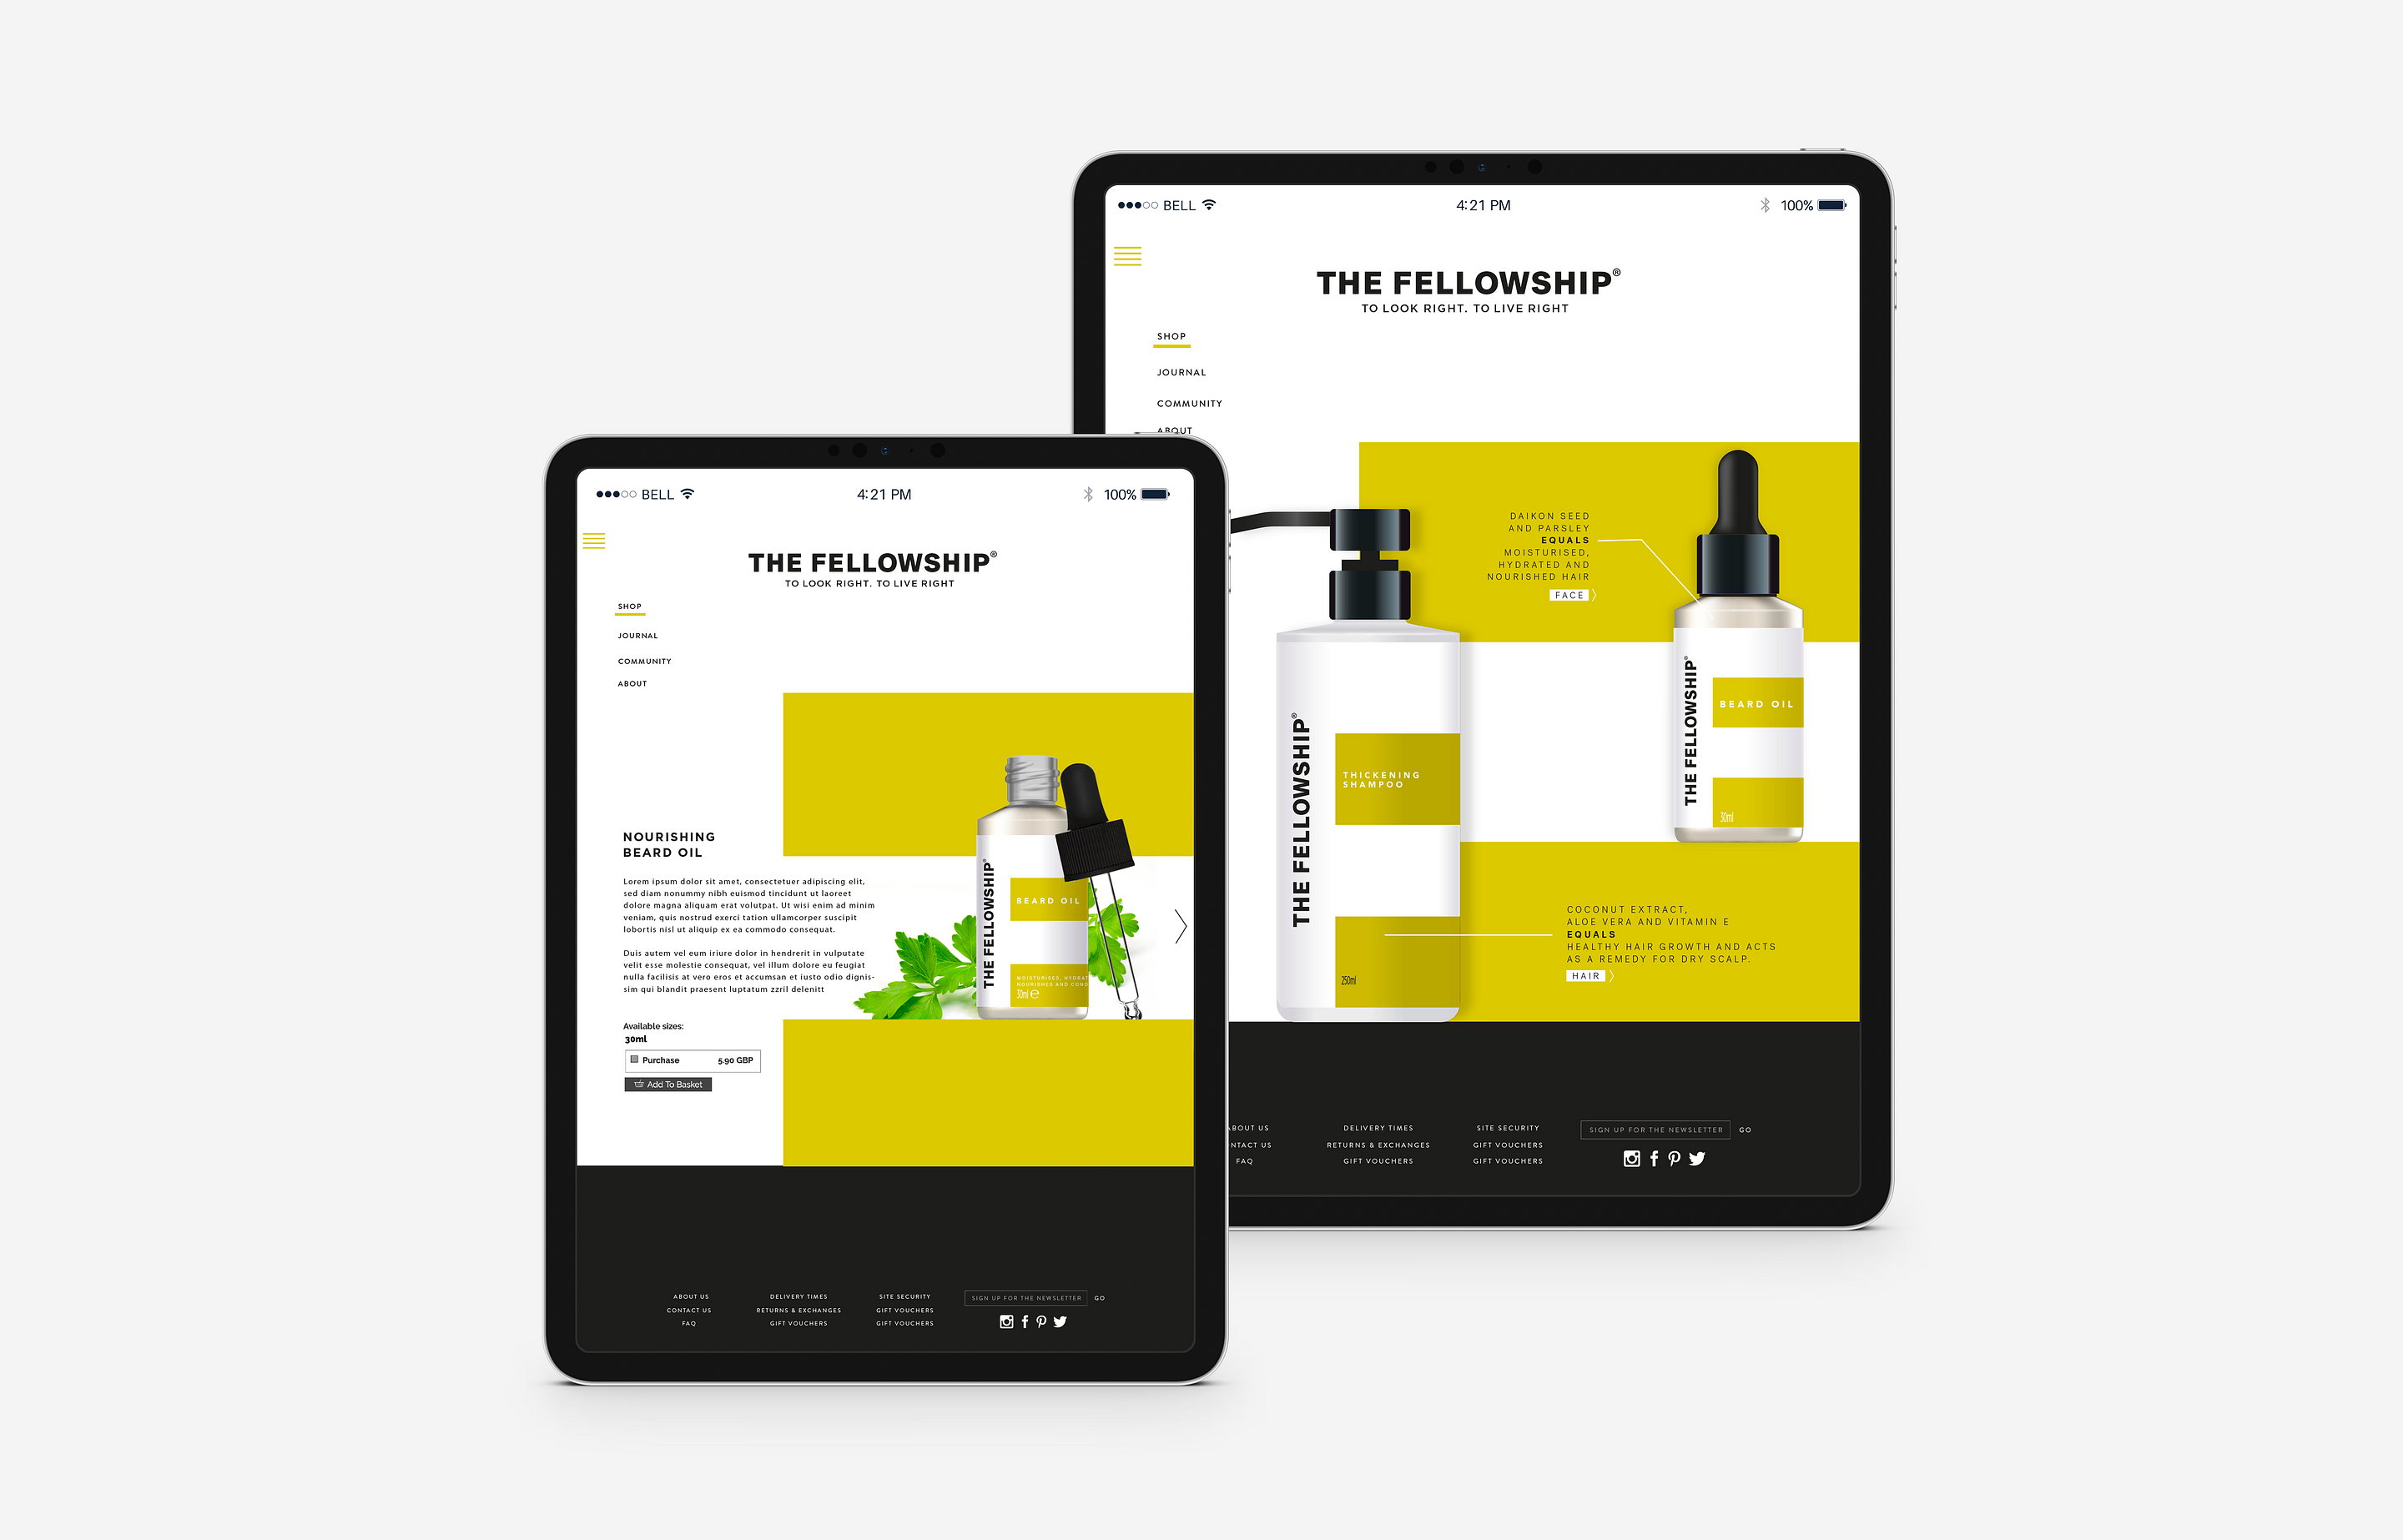 Free The Birds Designs Inclusive Men's Grooming Brand The Fellowship